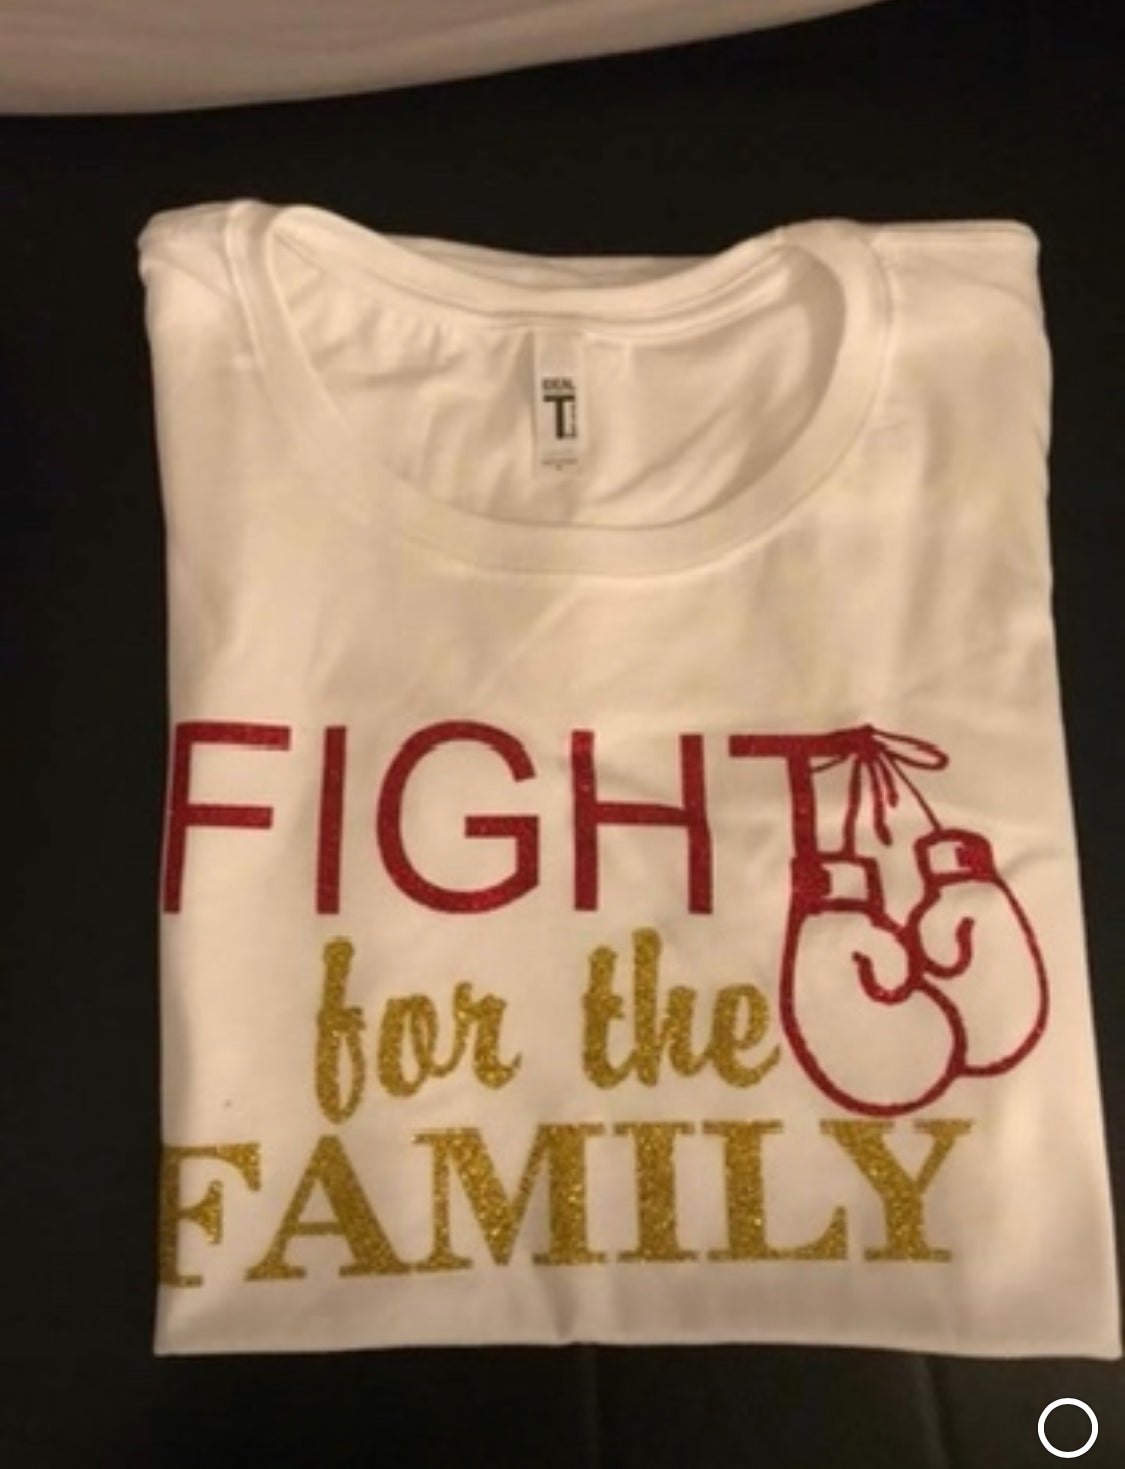 FIGHT FOR THE FAMILY SHIRTS